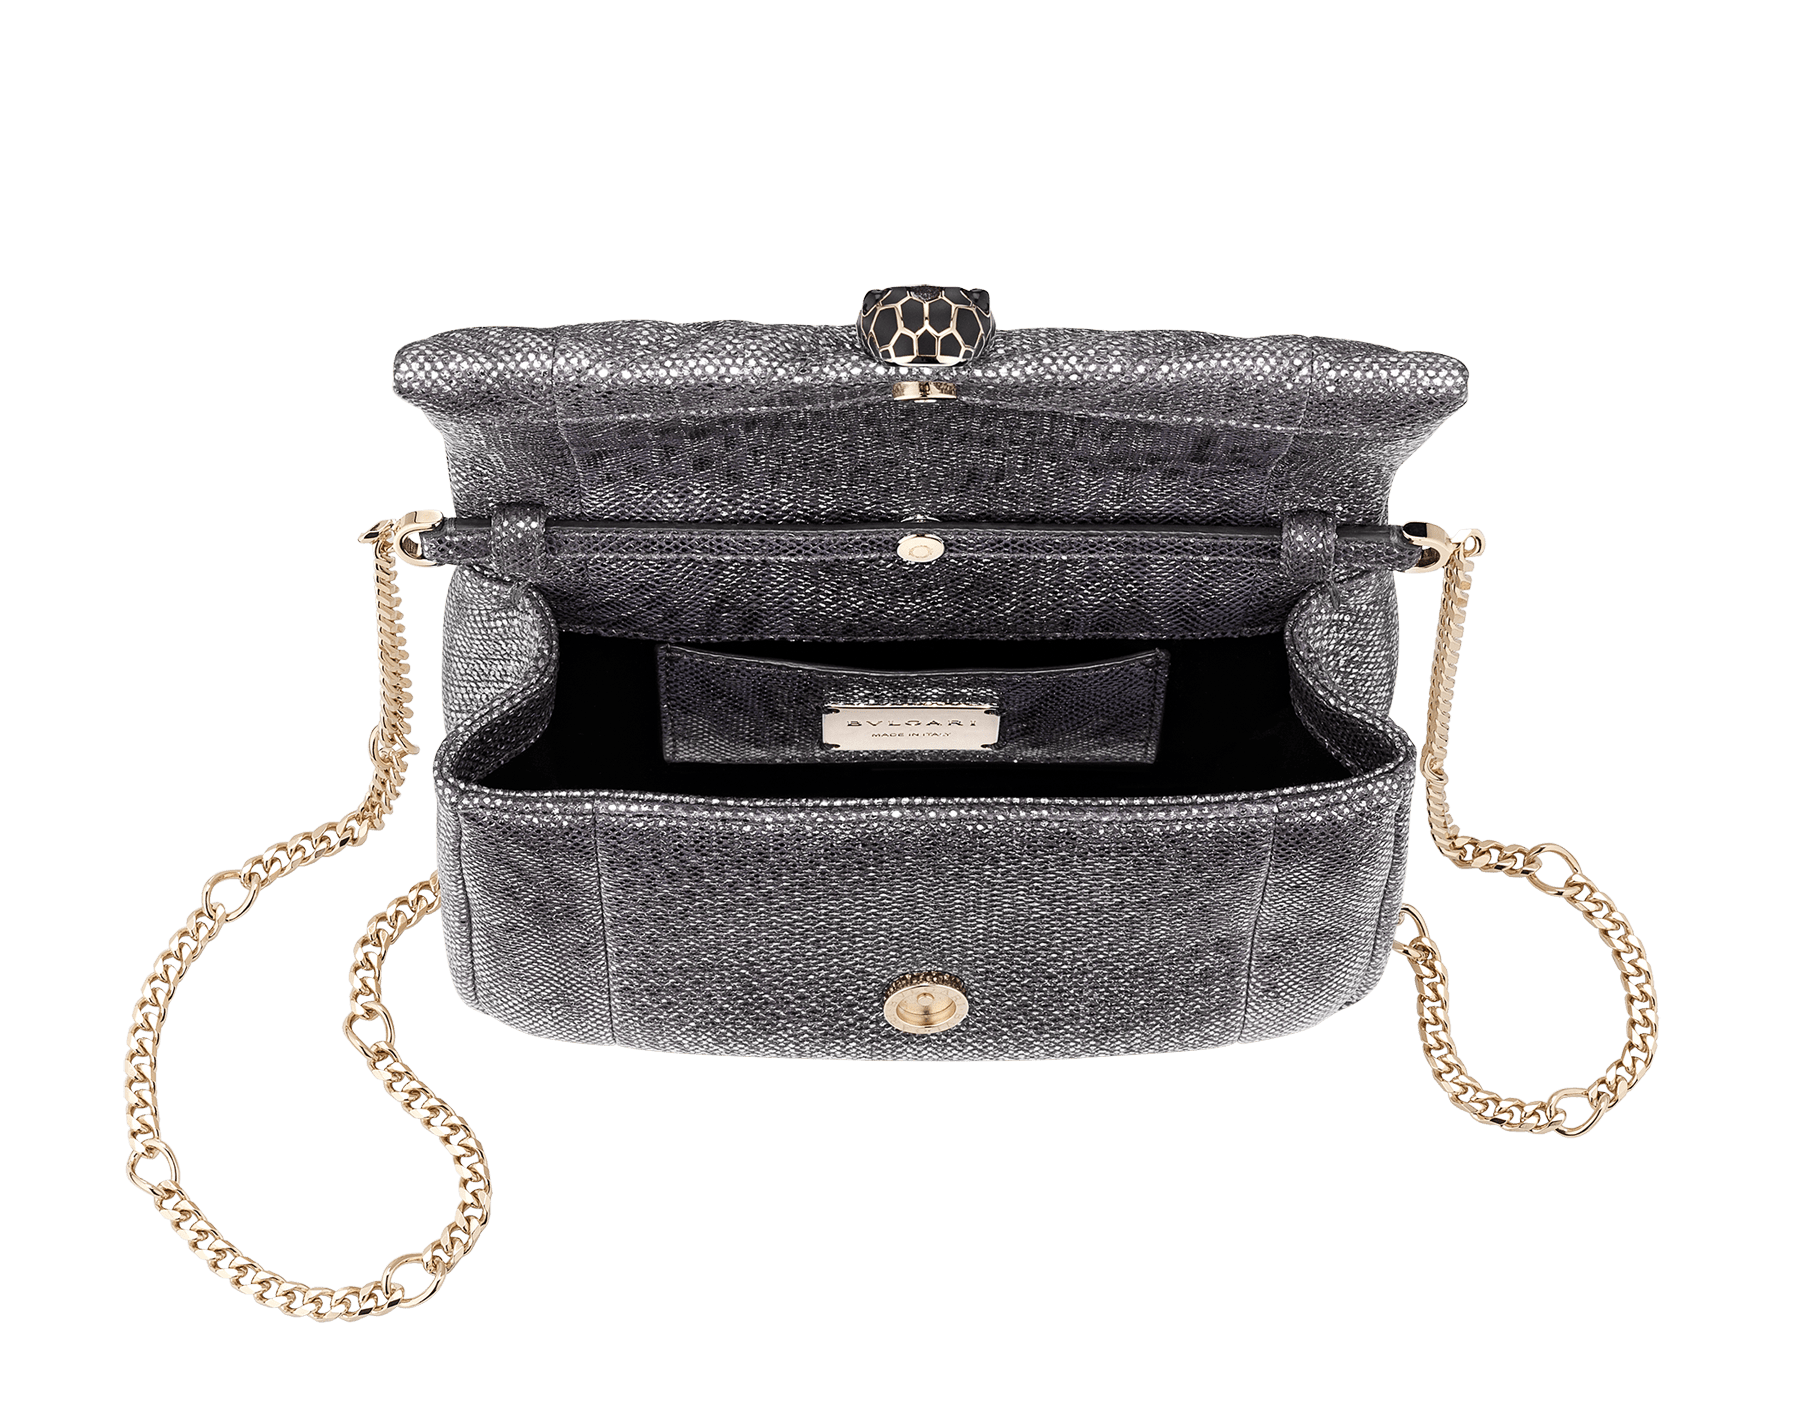 Serpenti Cabochon micro bag in soft matelassé charcoal diamond metallic karung, with a graphic motif. Tempting light gold brass-plated snake head closure in black and glitter charcoal diamond enamel and black onyx eyes. 288806 image 4